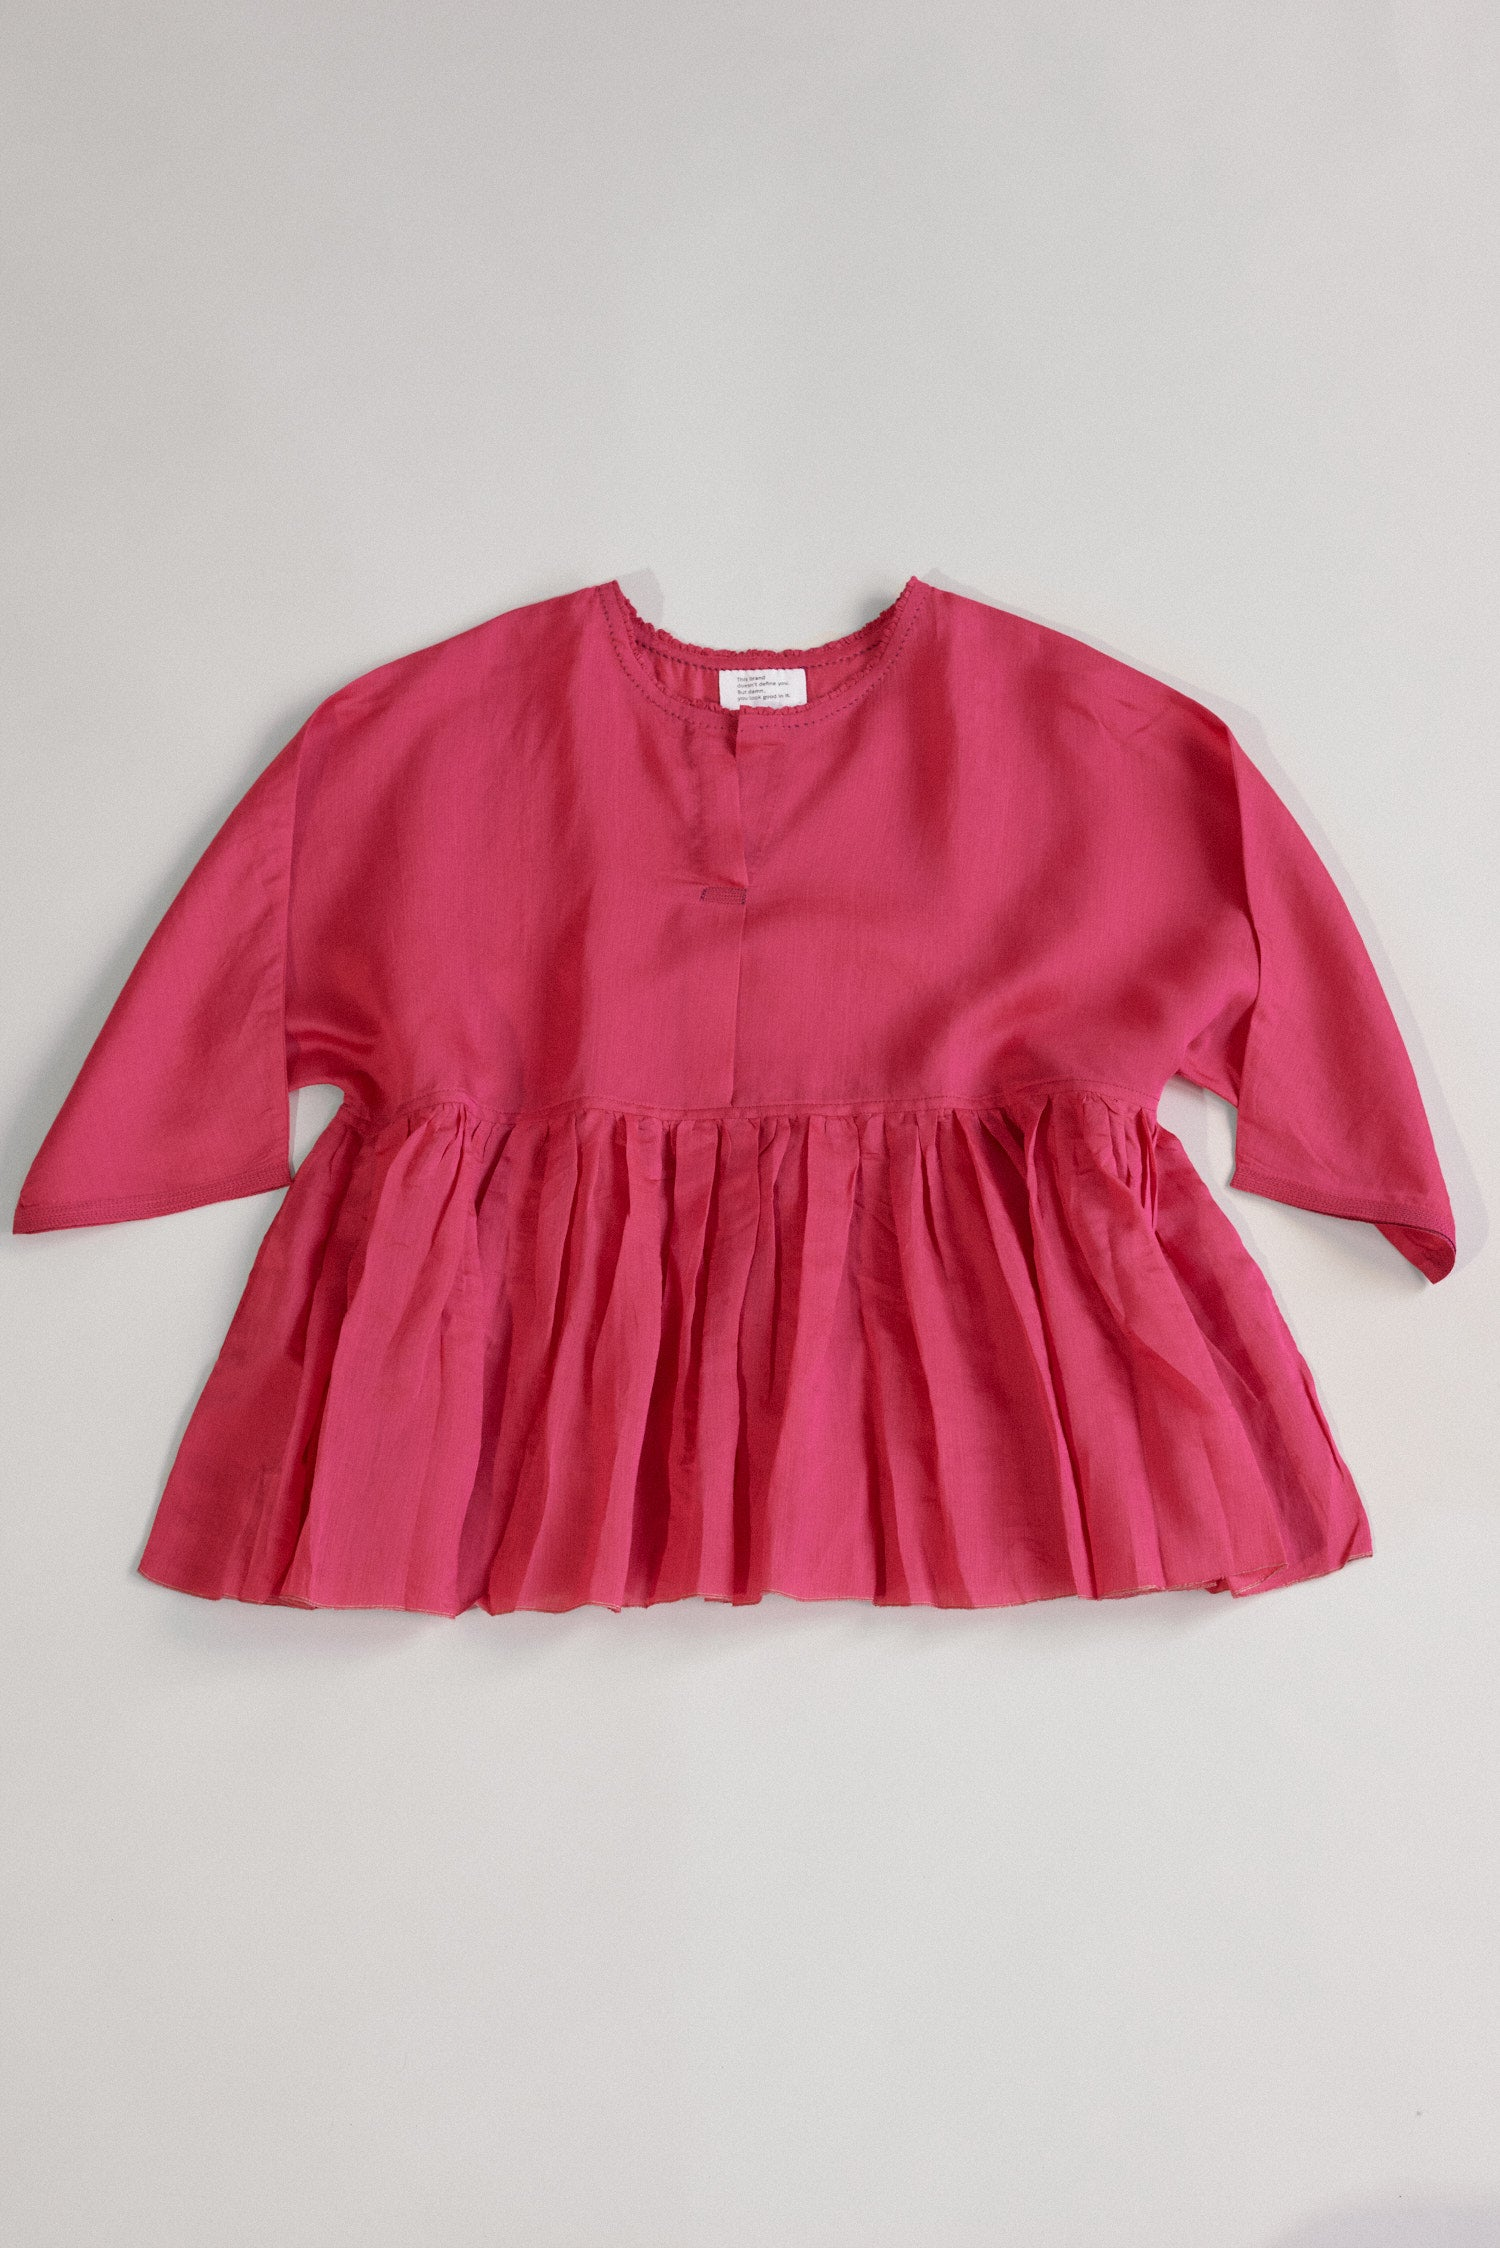 Runaway Bicycle, The Right Rouge Handwoven Silk Top Pink